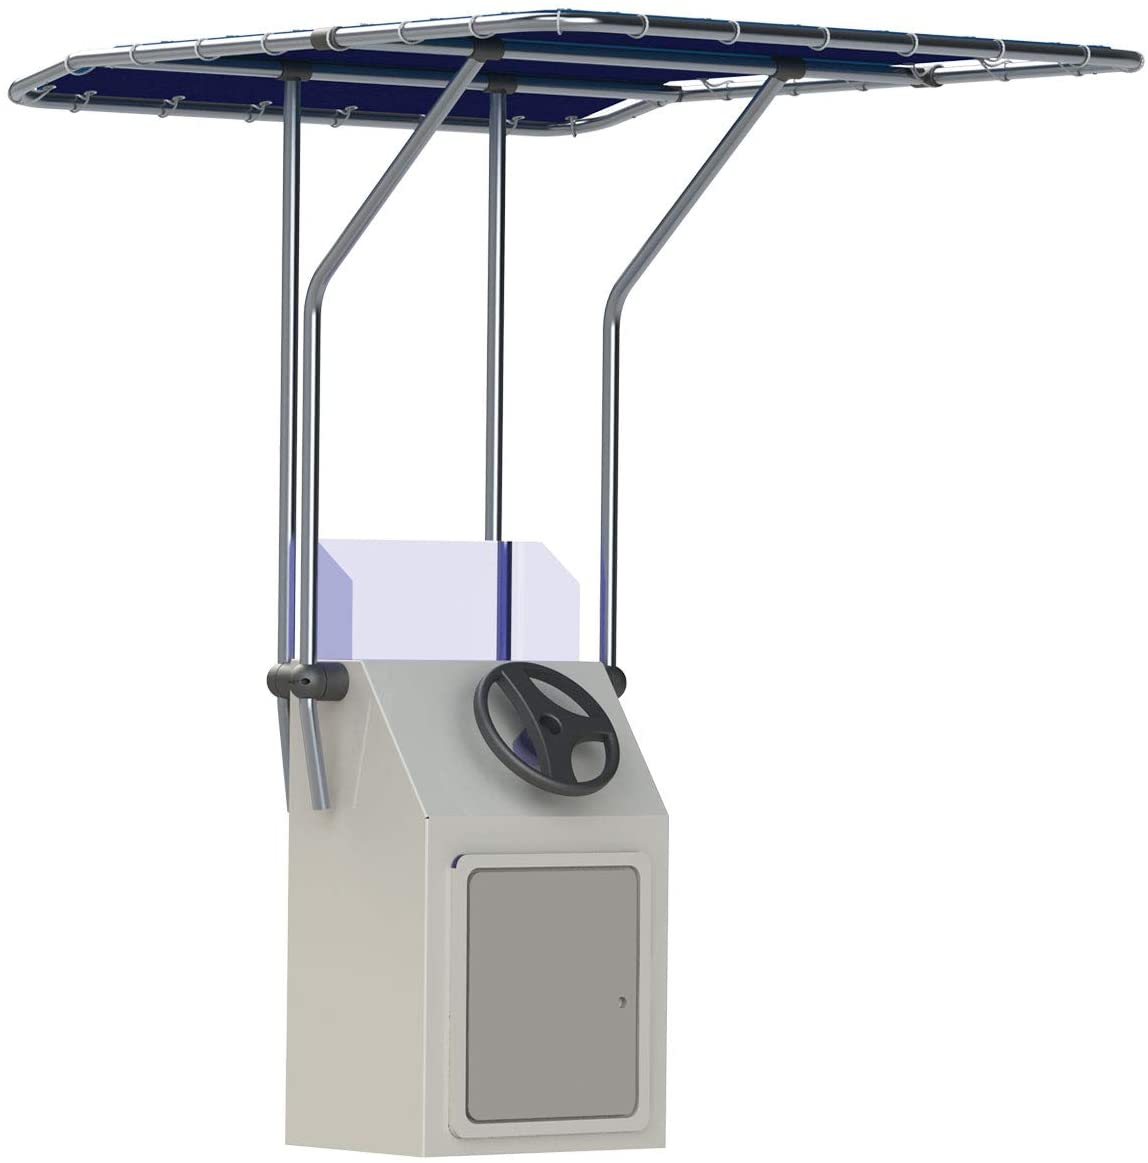 Oceansouth Marine Boat Retractable T-Top Boat T Top 2m Height 32mm Aluminum Tube MA 082